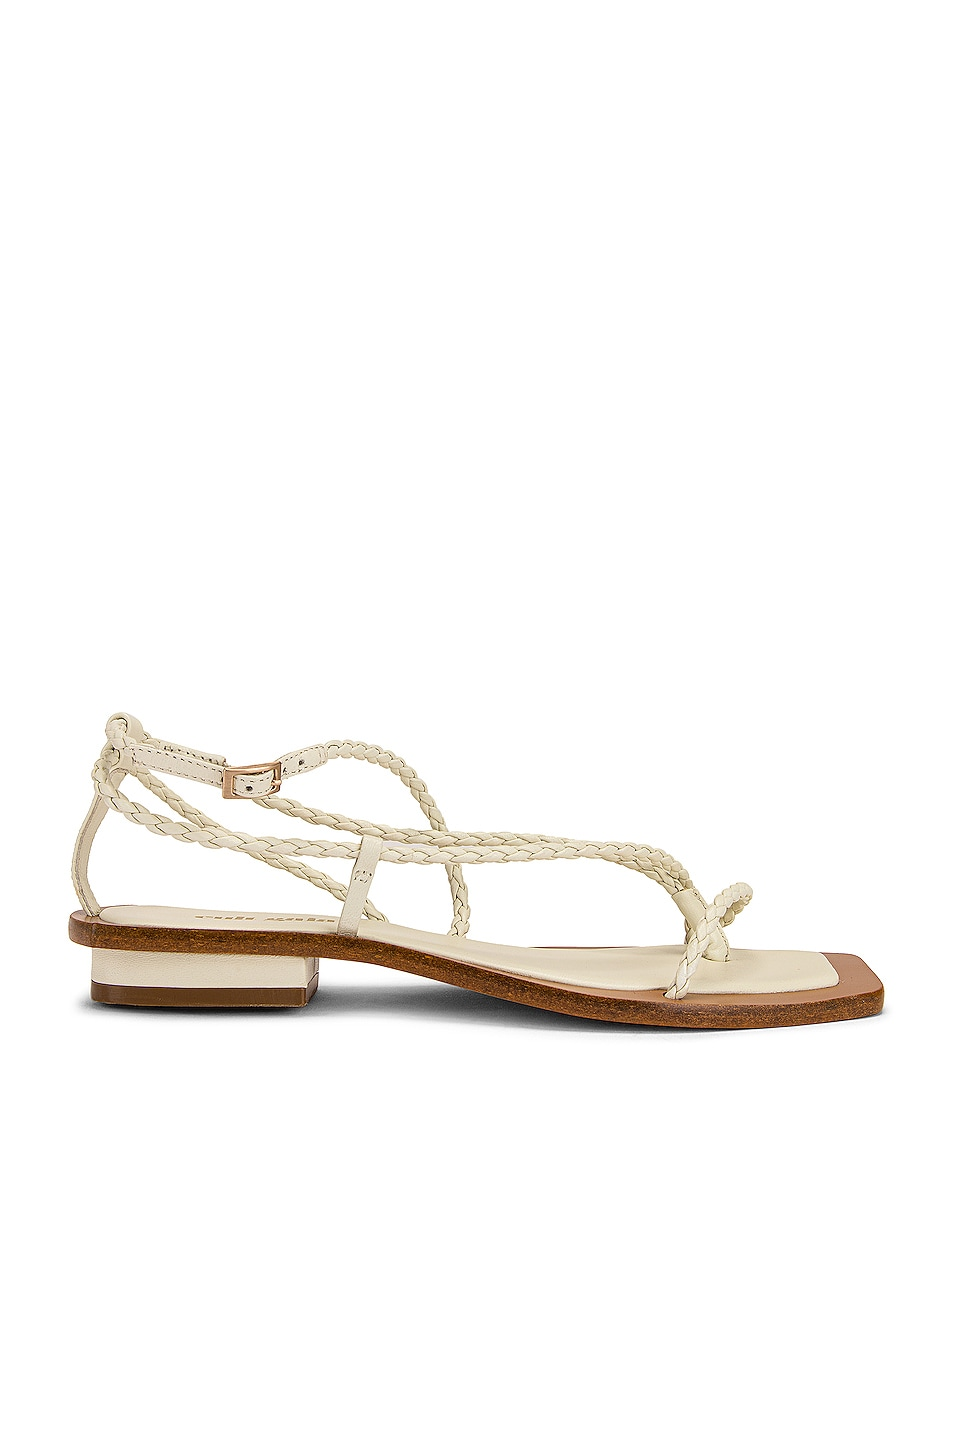 Image 1 of Cult Gaia Juno Sandal in White